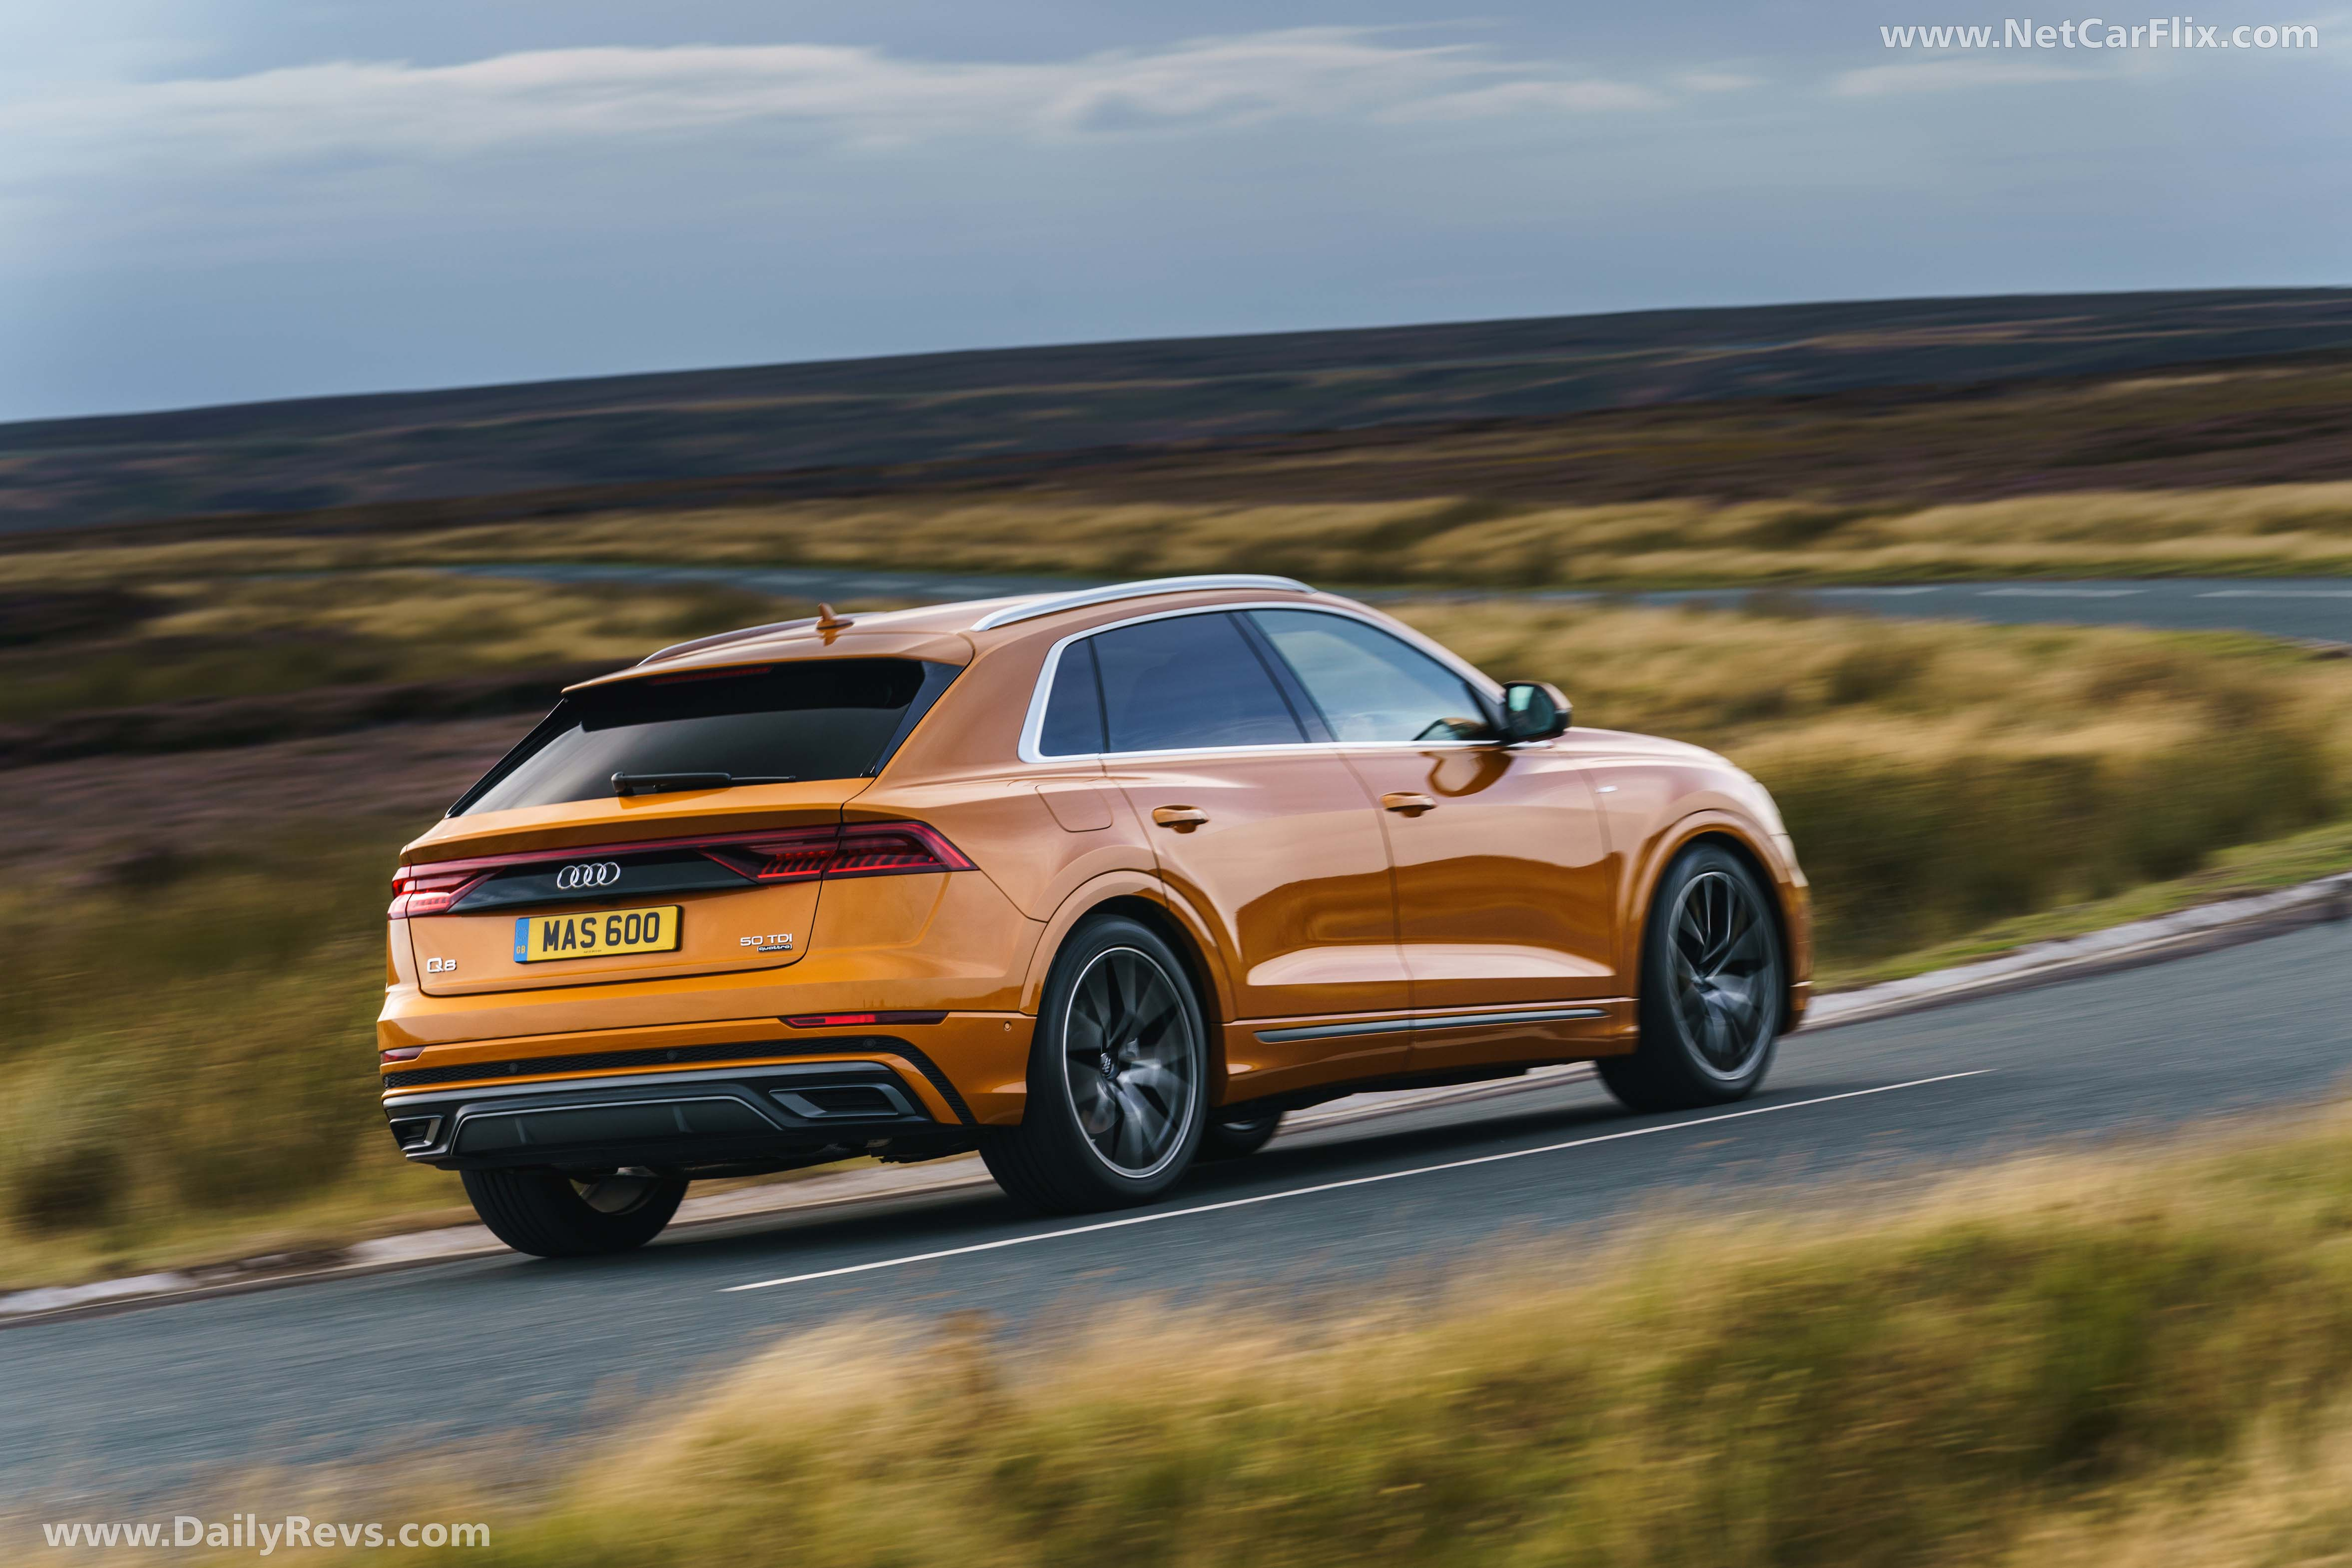 2019 Audi Q8 UK - HD images, Specs, information and ...